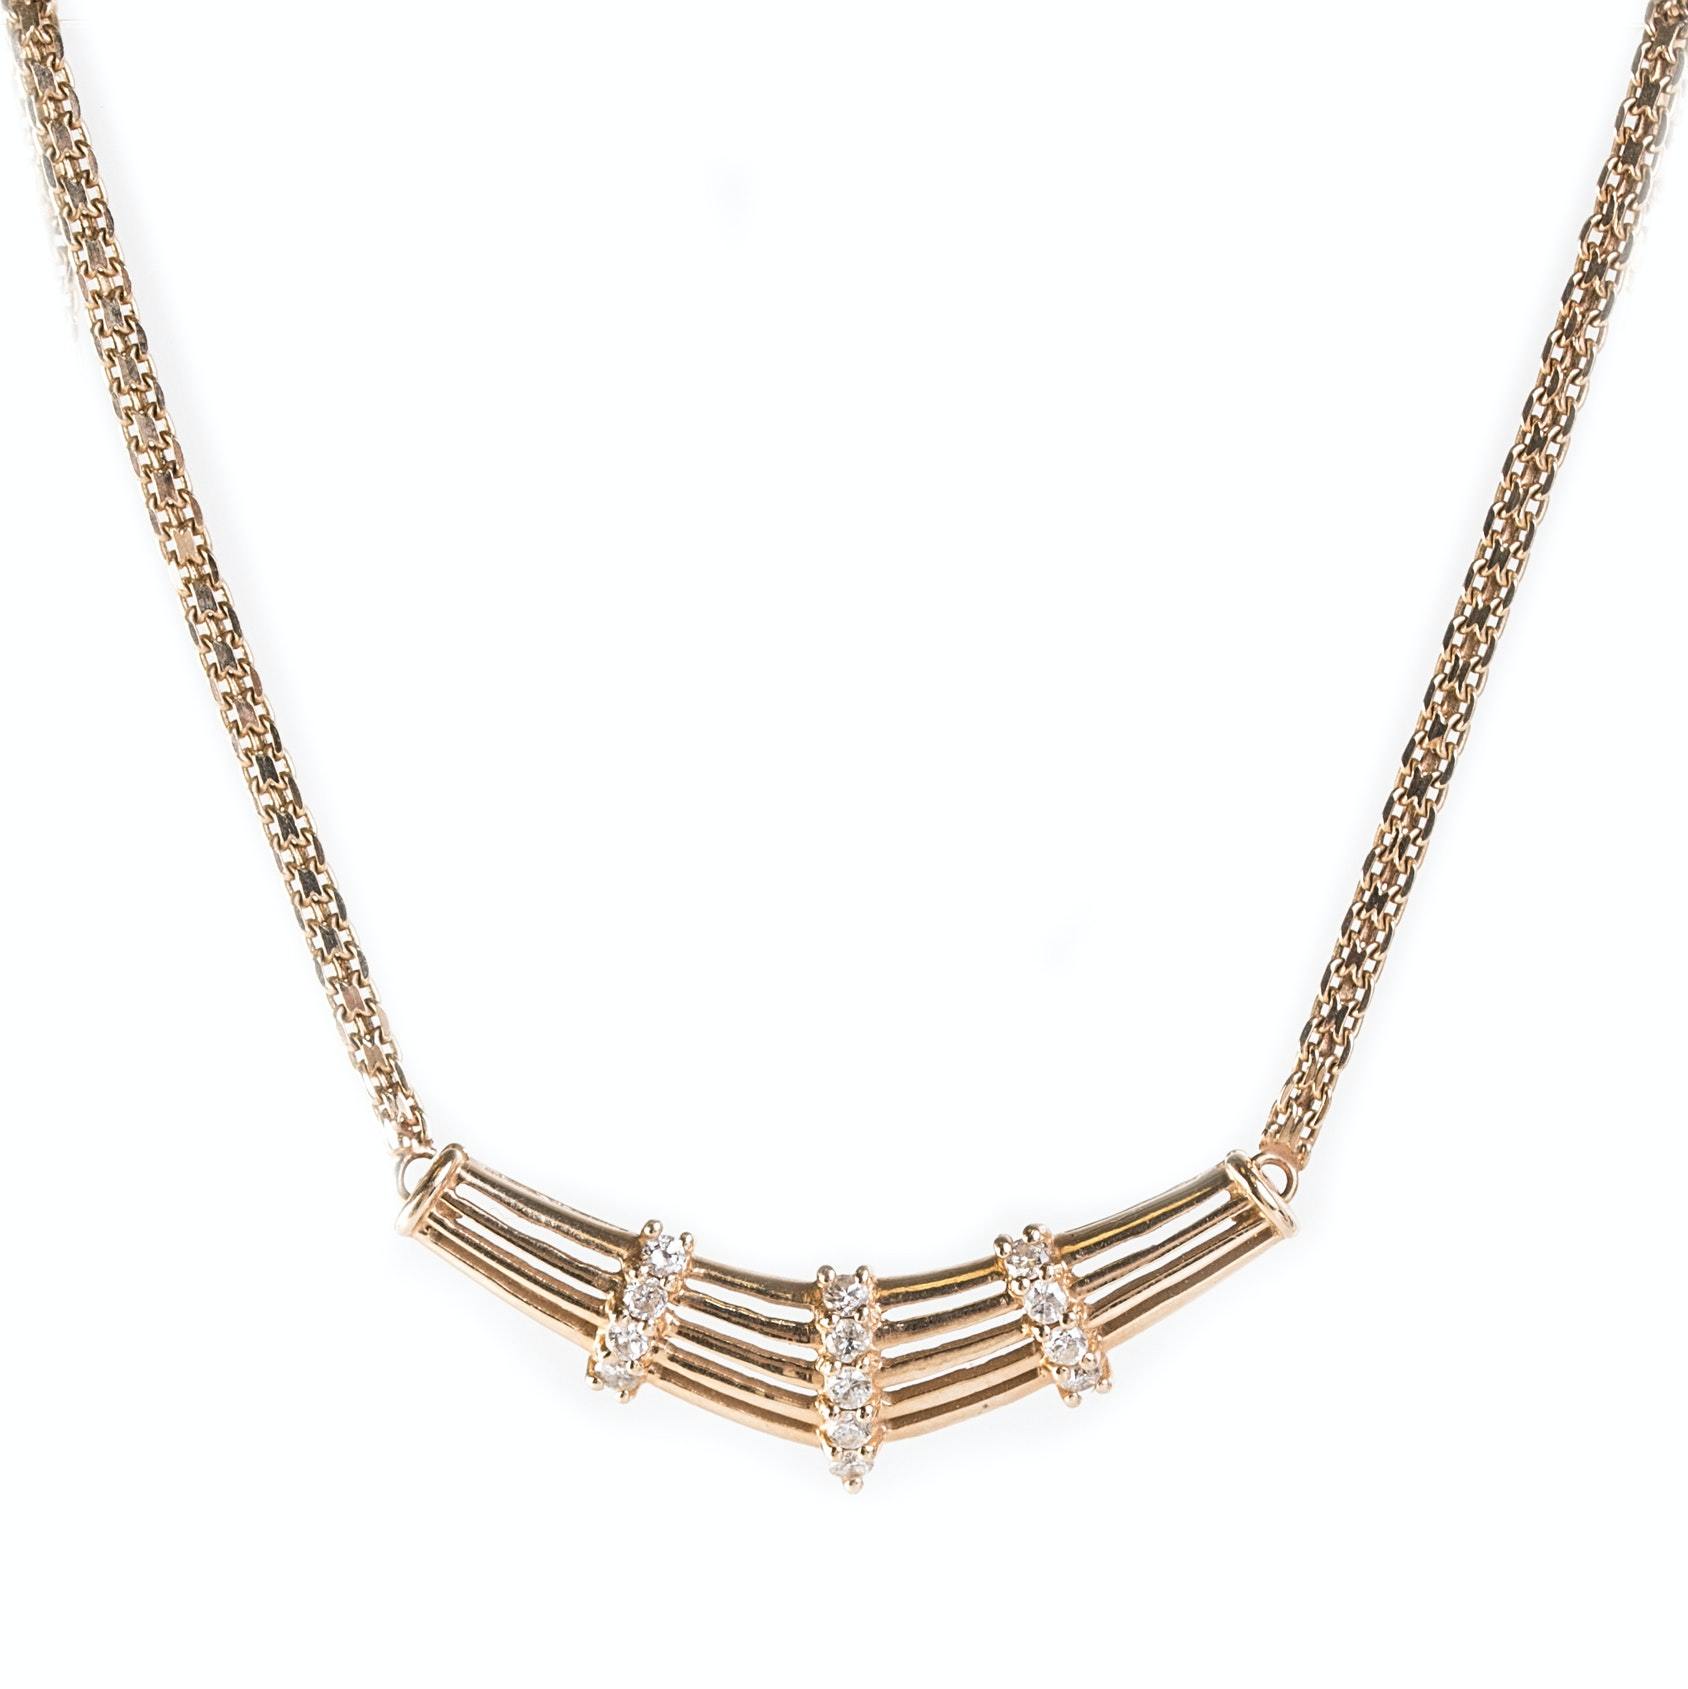 14K Yellow Gold and Diamond Station Necklace